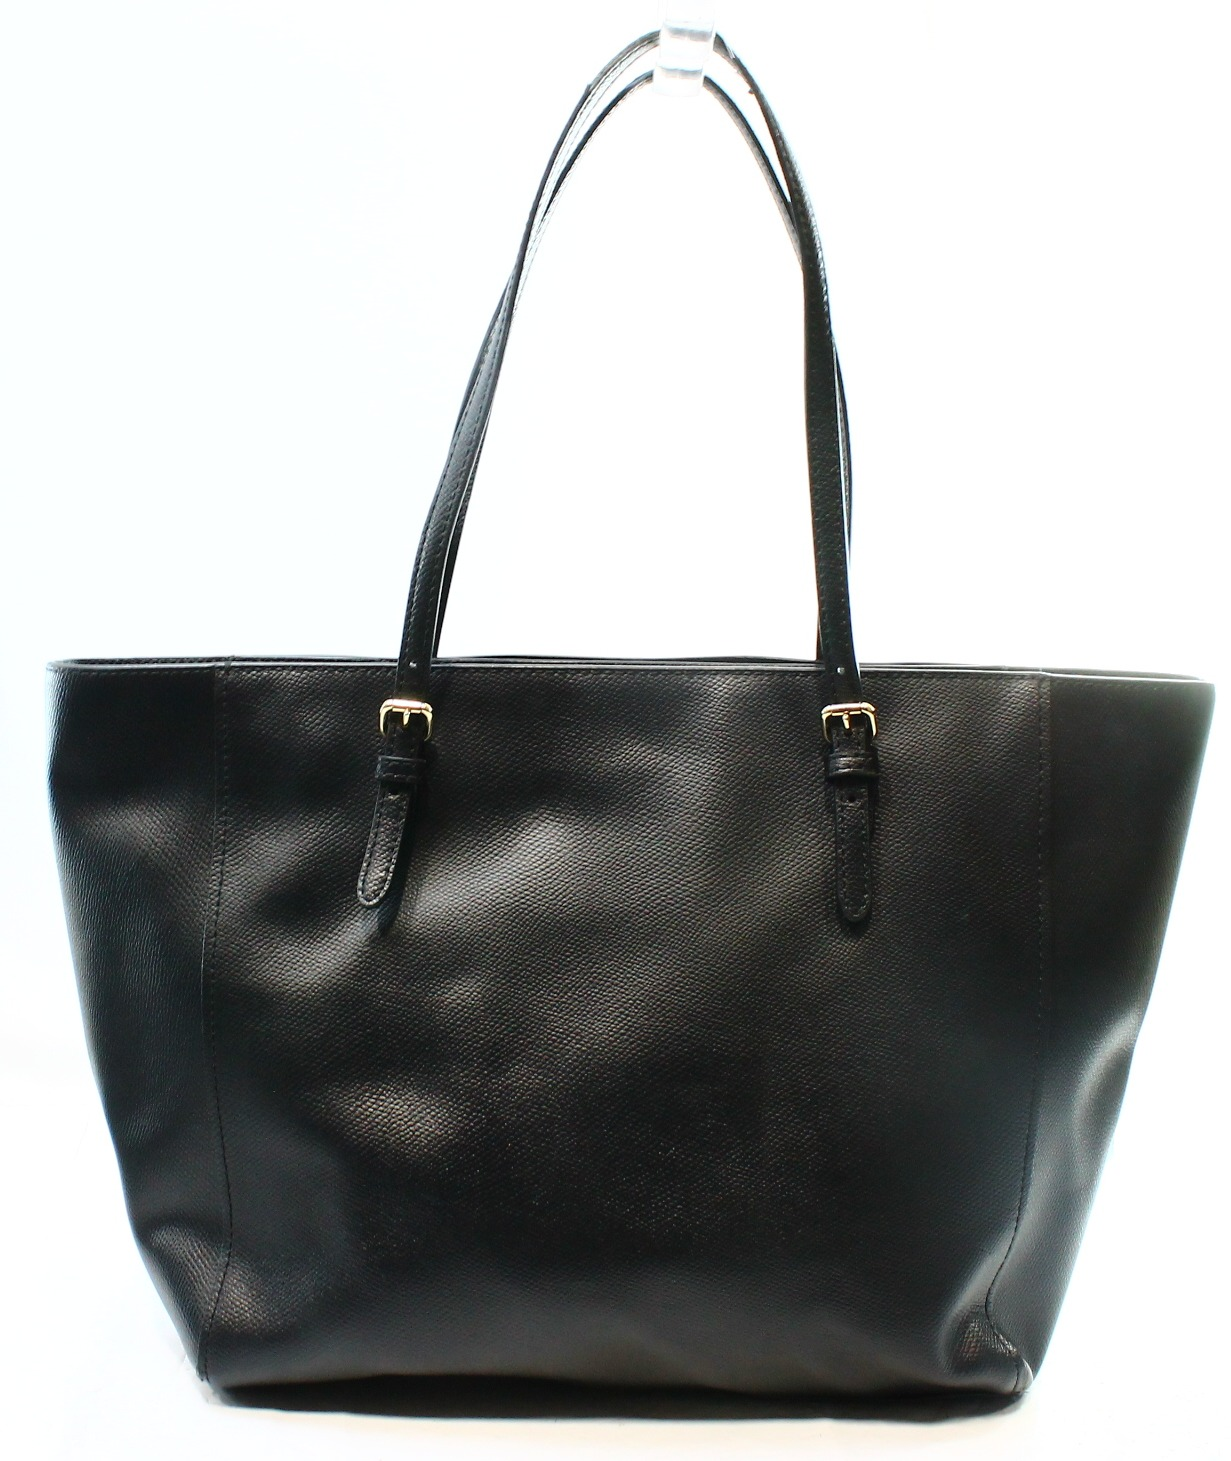 Coach Tote Bag Black Leather